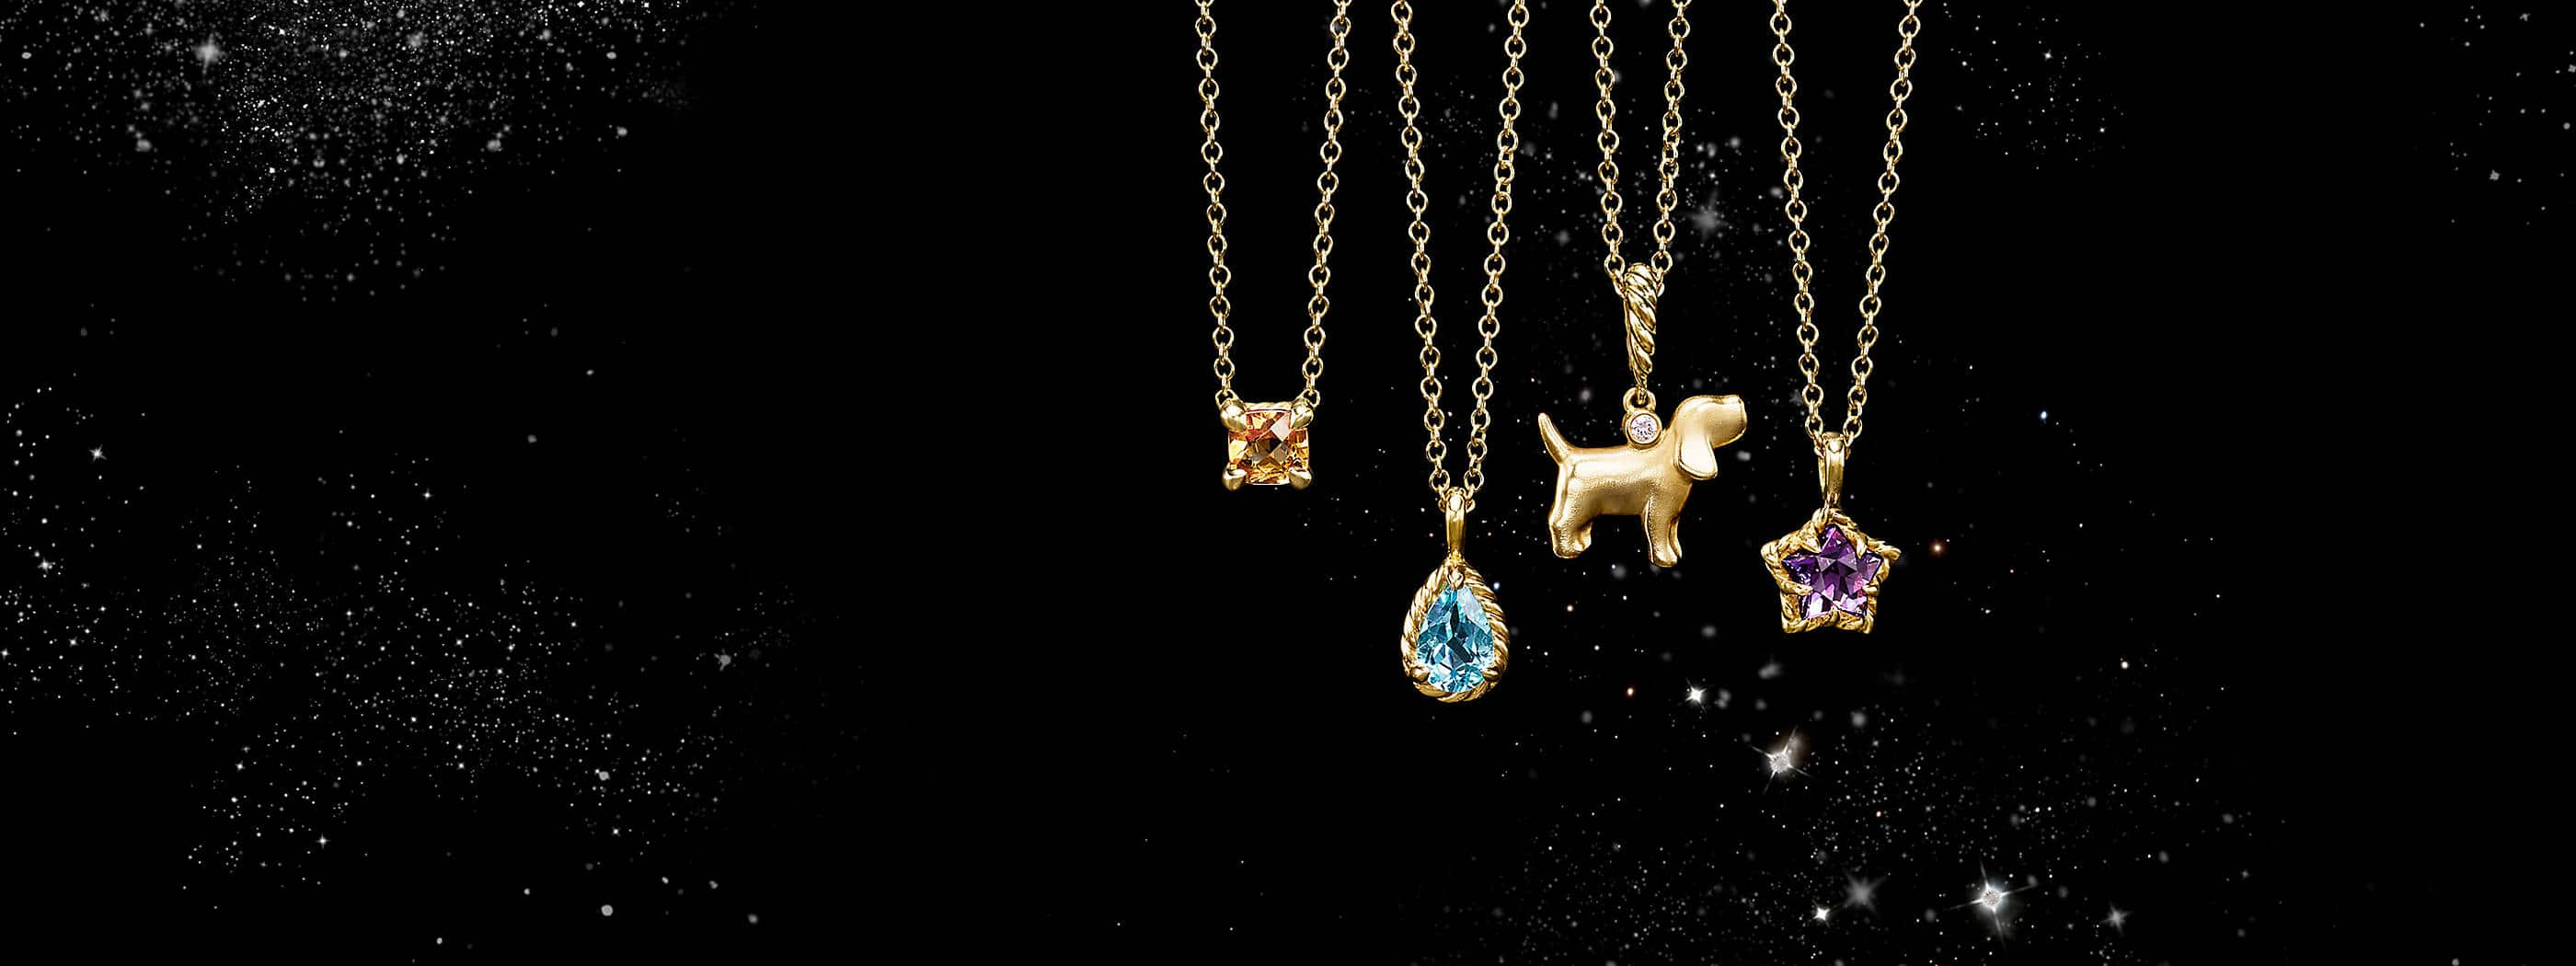 A color photograph shows four David Yurman kids' pendant necklaces hanging in front of a starry night sky. The kids' jewelry is crafted from 18K yellow with or without a cushion-cut citrine, teardrop-shaped blue topaz, dog charm with a white diamond and star-shaped amethyst.